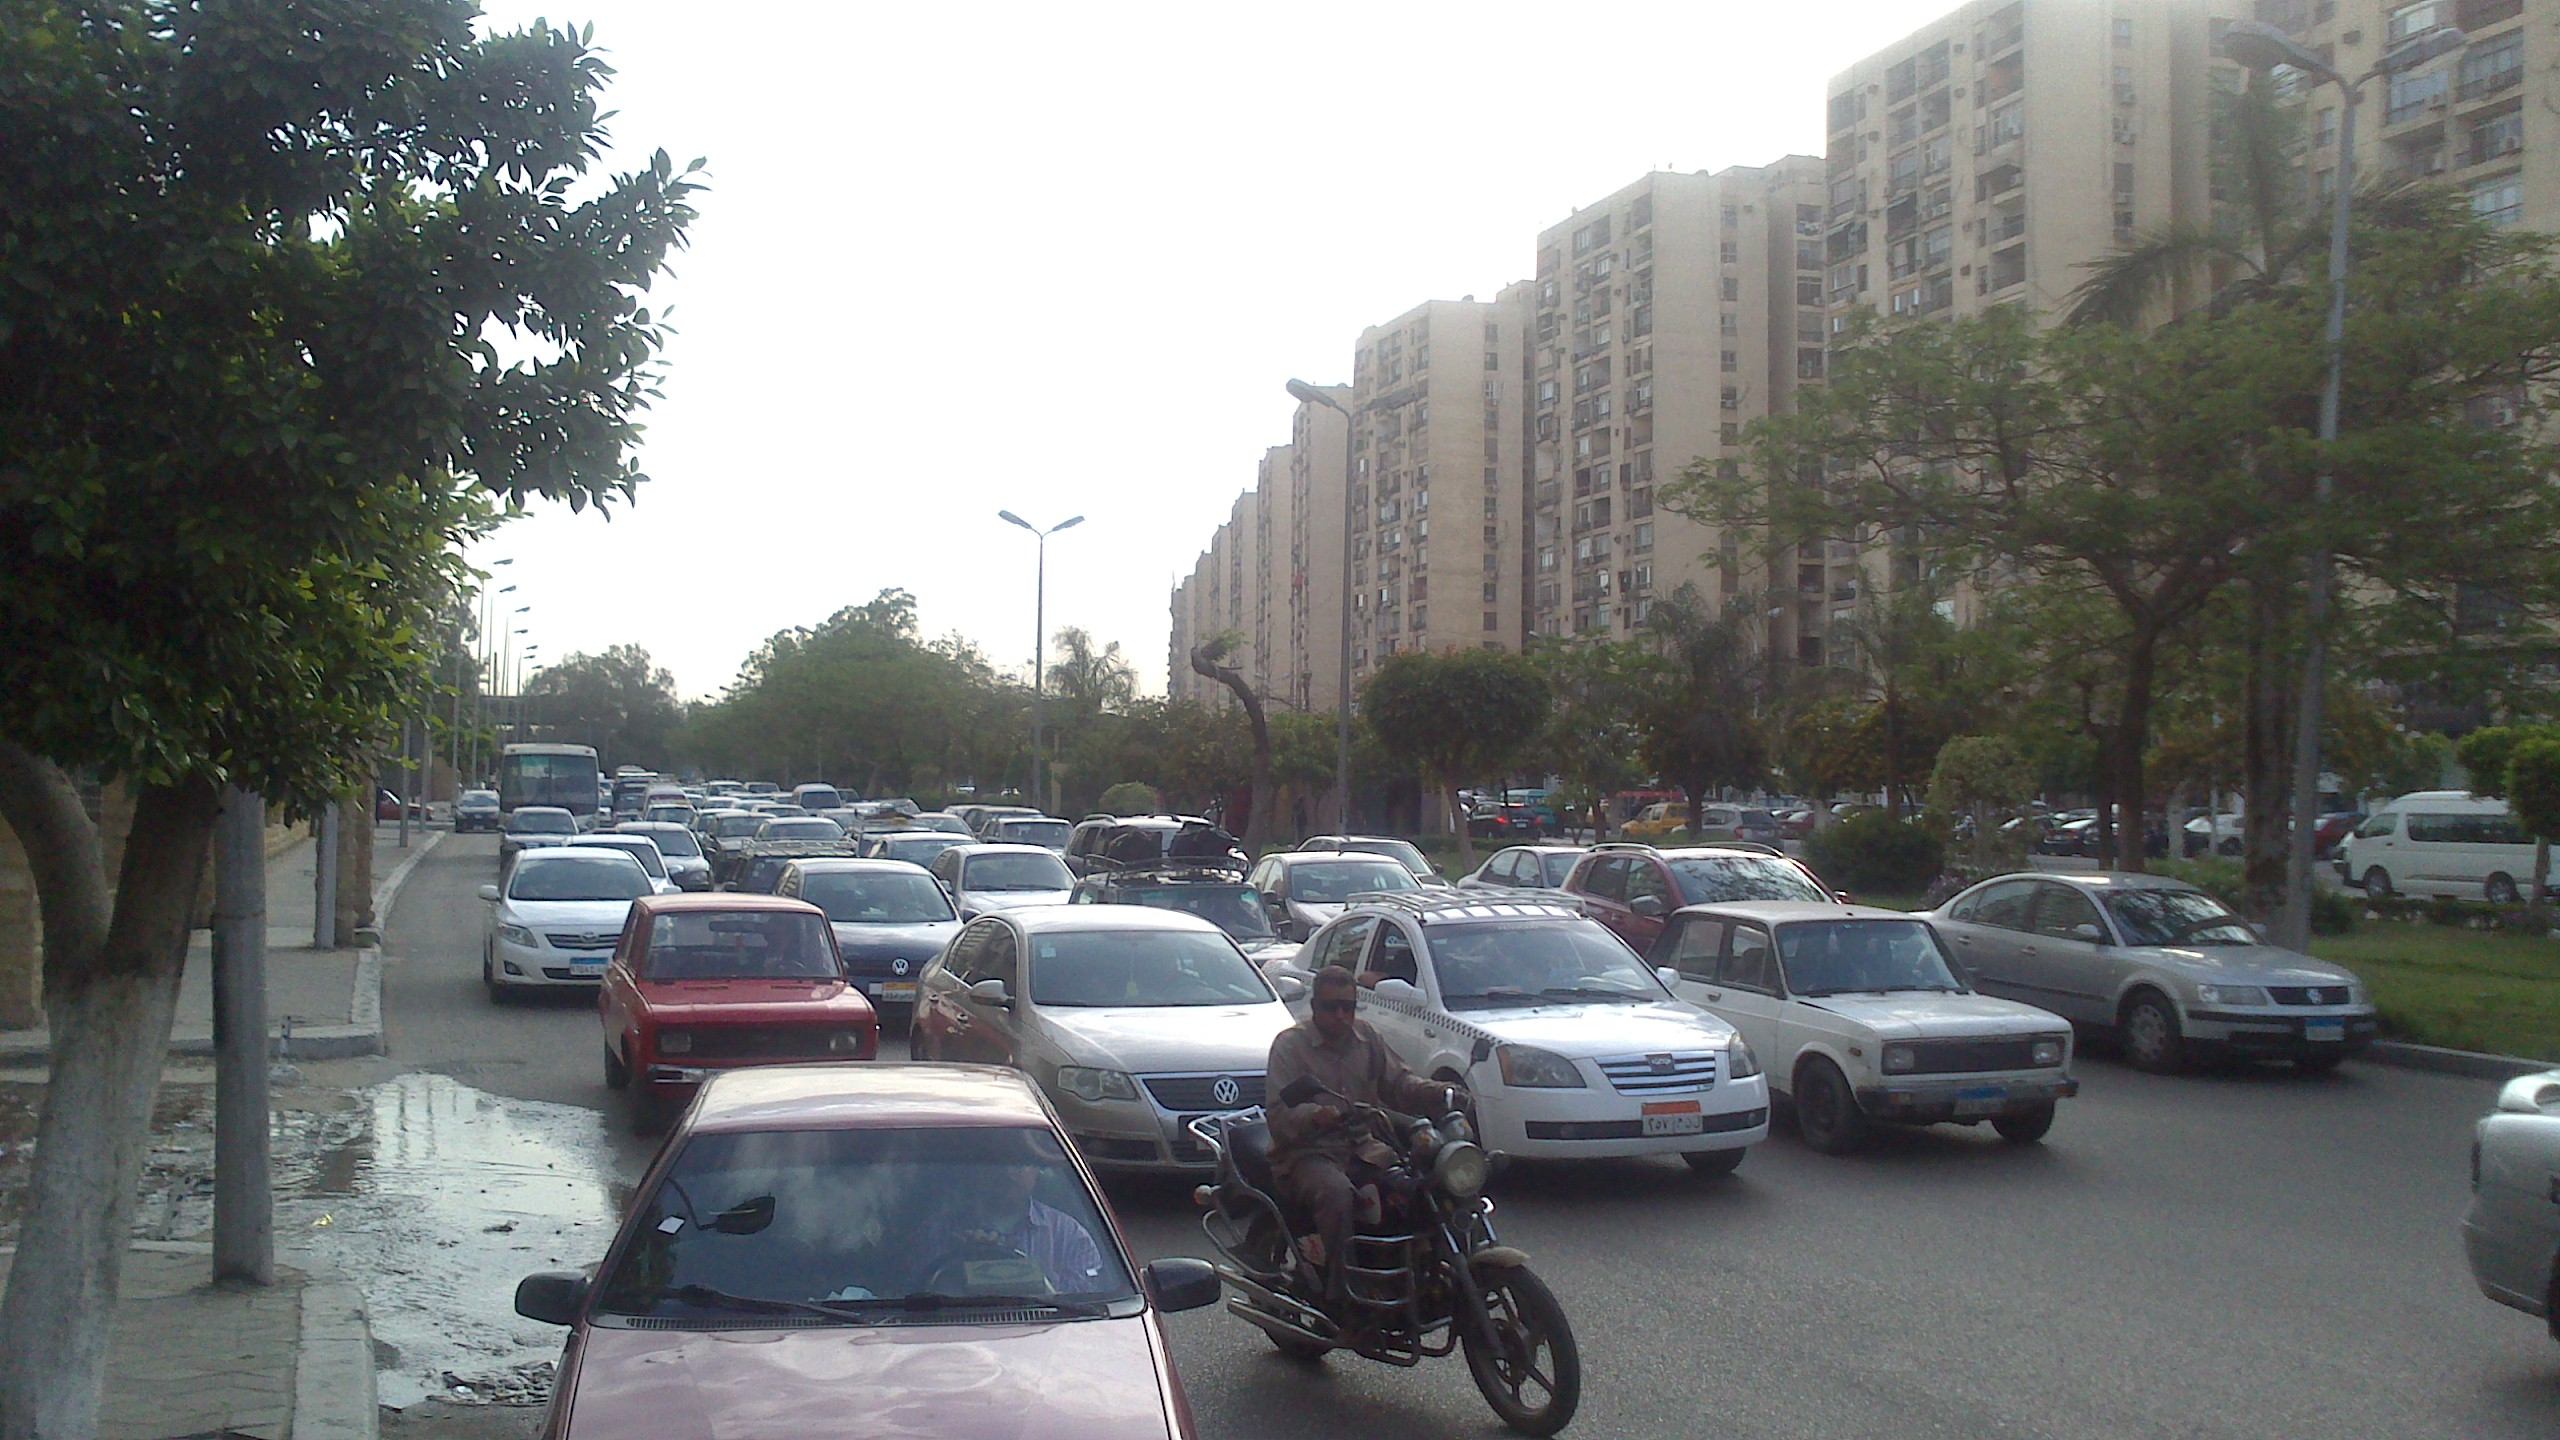 Road congestion on Cairo's streets, and a motorcyclist aims to beat the traffic.